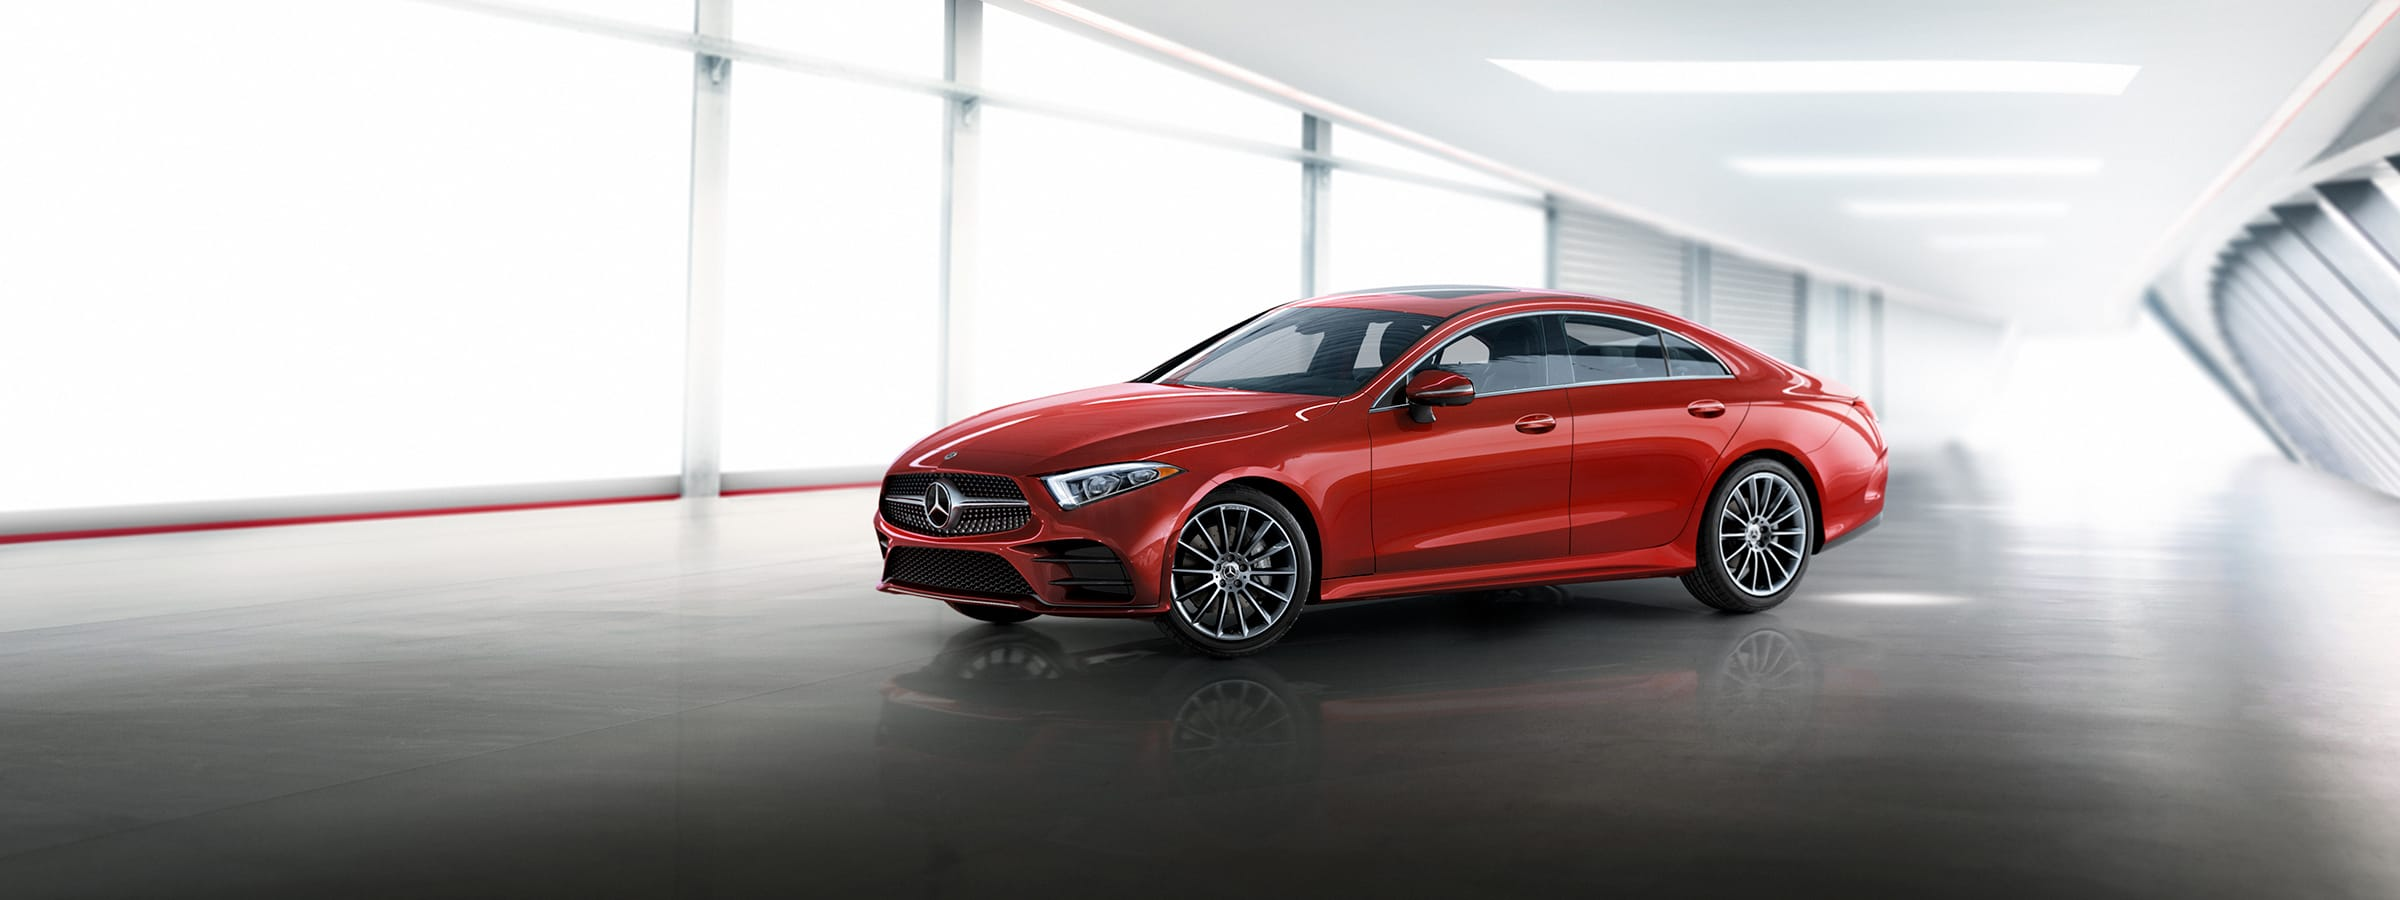 2019 CLS Coupe